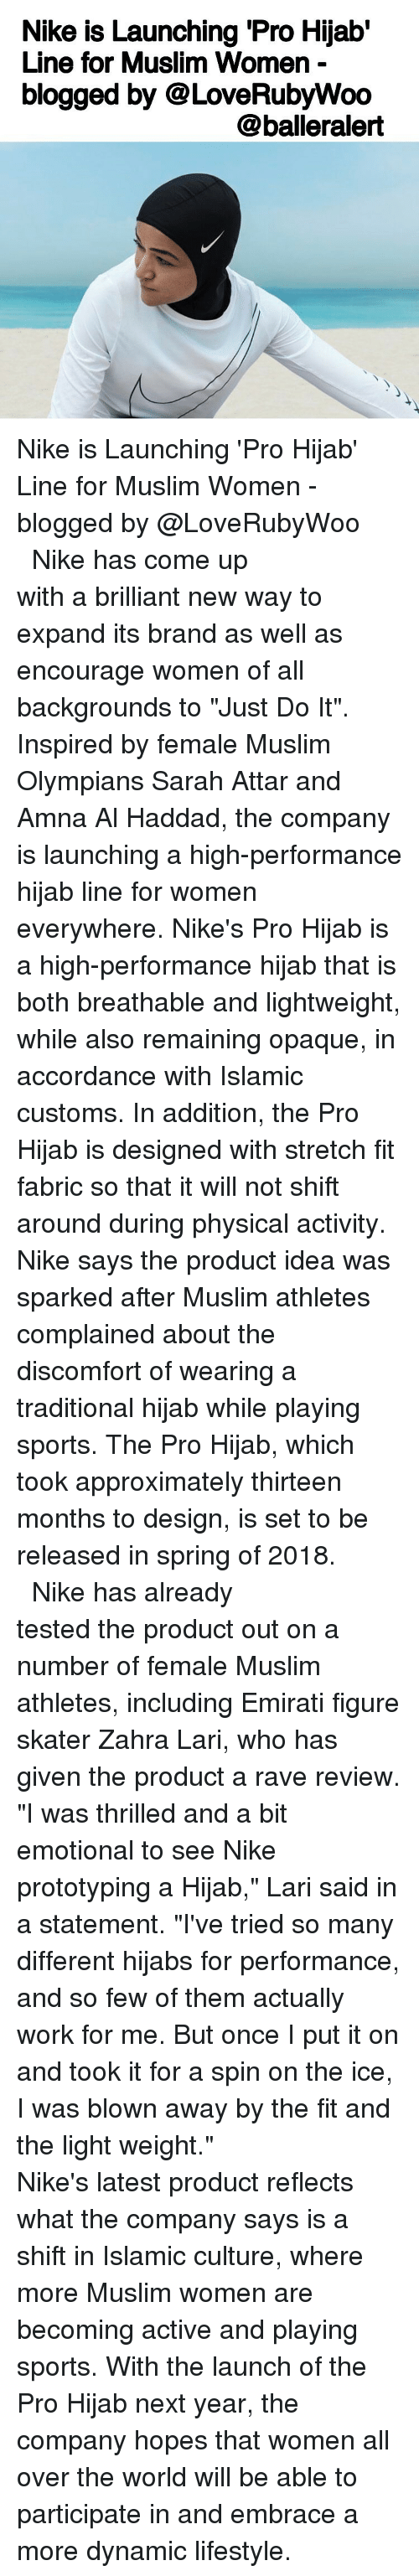 """raves: Nike is Launching Pro Hijab'  Line for Muslim Women  blogged by @LoveRubyWoo  @balleralert Nike is Launching 'Pro Hijab' Line for Muslim Women - blogged by @LoveRubyWoo ⠀⠀⠀⠀⠀⠀⠀⠀⠀ ⠀⠀⠀⠀⠀⠀⠀⠀⠀ Nike has come up with a brilliant new way to expand its brand as well as encourage women of all backgrounds to """"Just Do It"""". Inspired by female Muslim Olympians Sarah Attar and Amna Al Haddad, the company is launching a high-performance hijab line for women everywhere. Nike's Pro Hijab is a high-performance hijab that is both breathable and lightweight, while also remaining opaque, in accordance with Islamic customs. In addition, the Pro Hijab is designed with stretch fit fabric so that it will not shift around during physical activity. Nike says the product idea was sparked after Muslim athletes complained about the discomfort of wearing a traditional hijab while playing sports. The Pro Hijab, which took approximately thirteen months to design, is set to be released in spring of 2018. ⠀⠀⠀⠀⠀⠀⠀⠀⠀ ⠀⠀⠀⠀⠀⠀⠀⠀⠀ Nike has already tested the product out on a number of female Muslim athletes, including Emirati figure skater Zahra Lari, who has given the product a rave review. """"I was thrilled and a bit emotional to see Nike prototyping a Hijab,"""" Lari said in a statement. """"I've tried so many different hijabs for performance, and so few of them actually work for me. But once I put it on and took it for a spin on the ice, I was blown away by the fit and the light weight."""" ⠀⠀⠀⠀⠀⠀⠀⠀⠀ ⠀⠀⠀⠀⠀⠀⠀⠀⠀ Nike's latest product reflects what the company says is a shift in Islamic culture, where more Muslim women are becoming active and playing sports. With the launch of the Pro Hijab next year, the company hopes that women all over the world will be able to participate in and embrace a more dynamic lifestyle."""